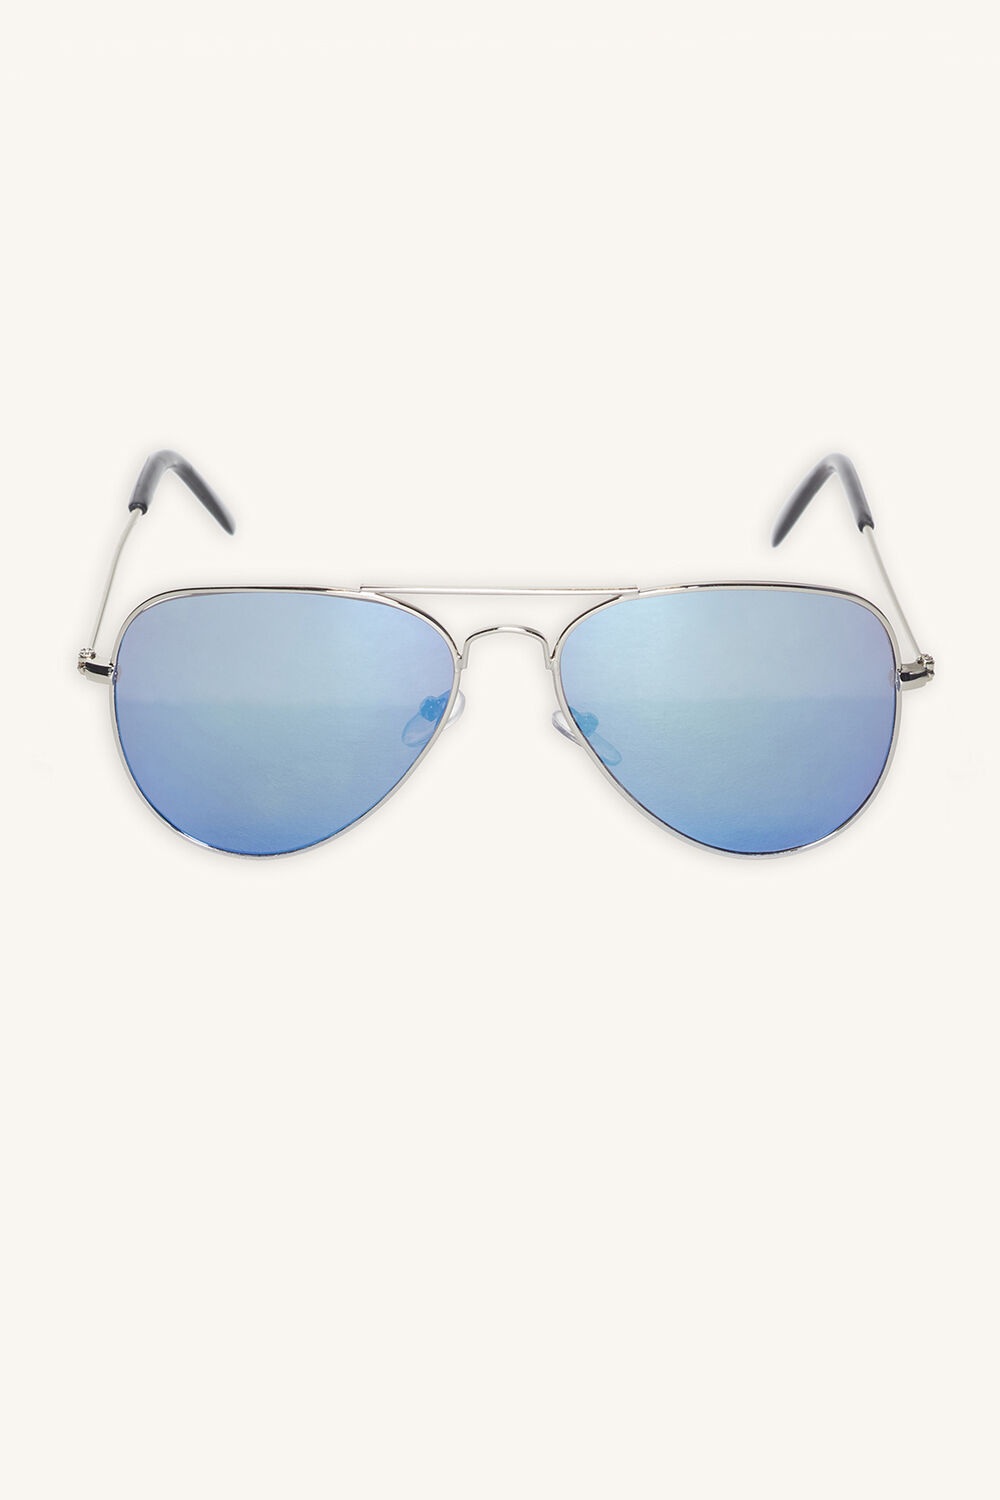 JOEY AVIATOR SUNGLASSES in colour BLUE BELL